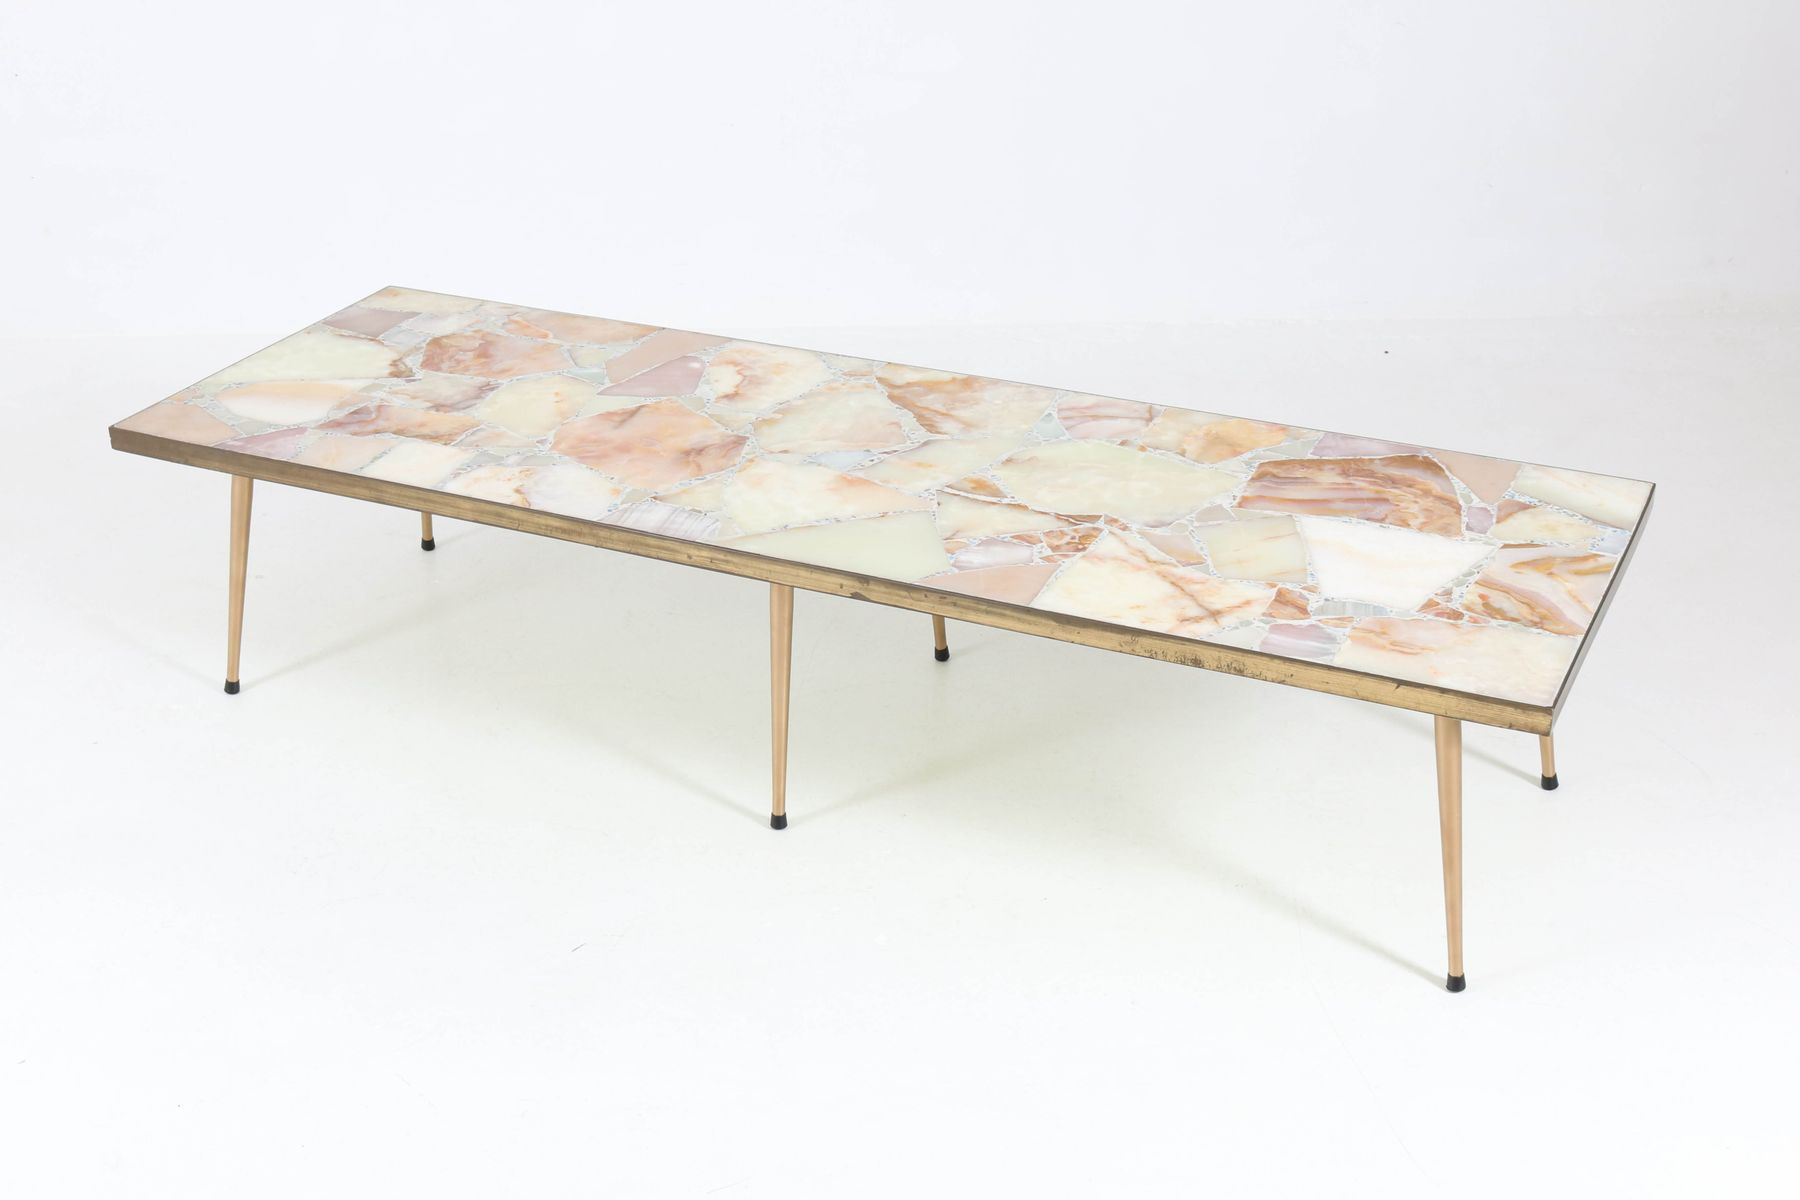 - Large Italian Mid-Century Modern Coffee Table With Onyx Top, 1950s